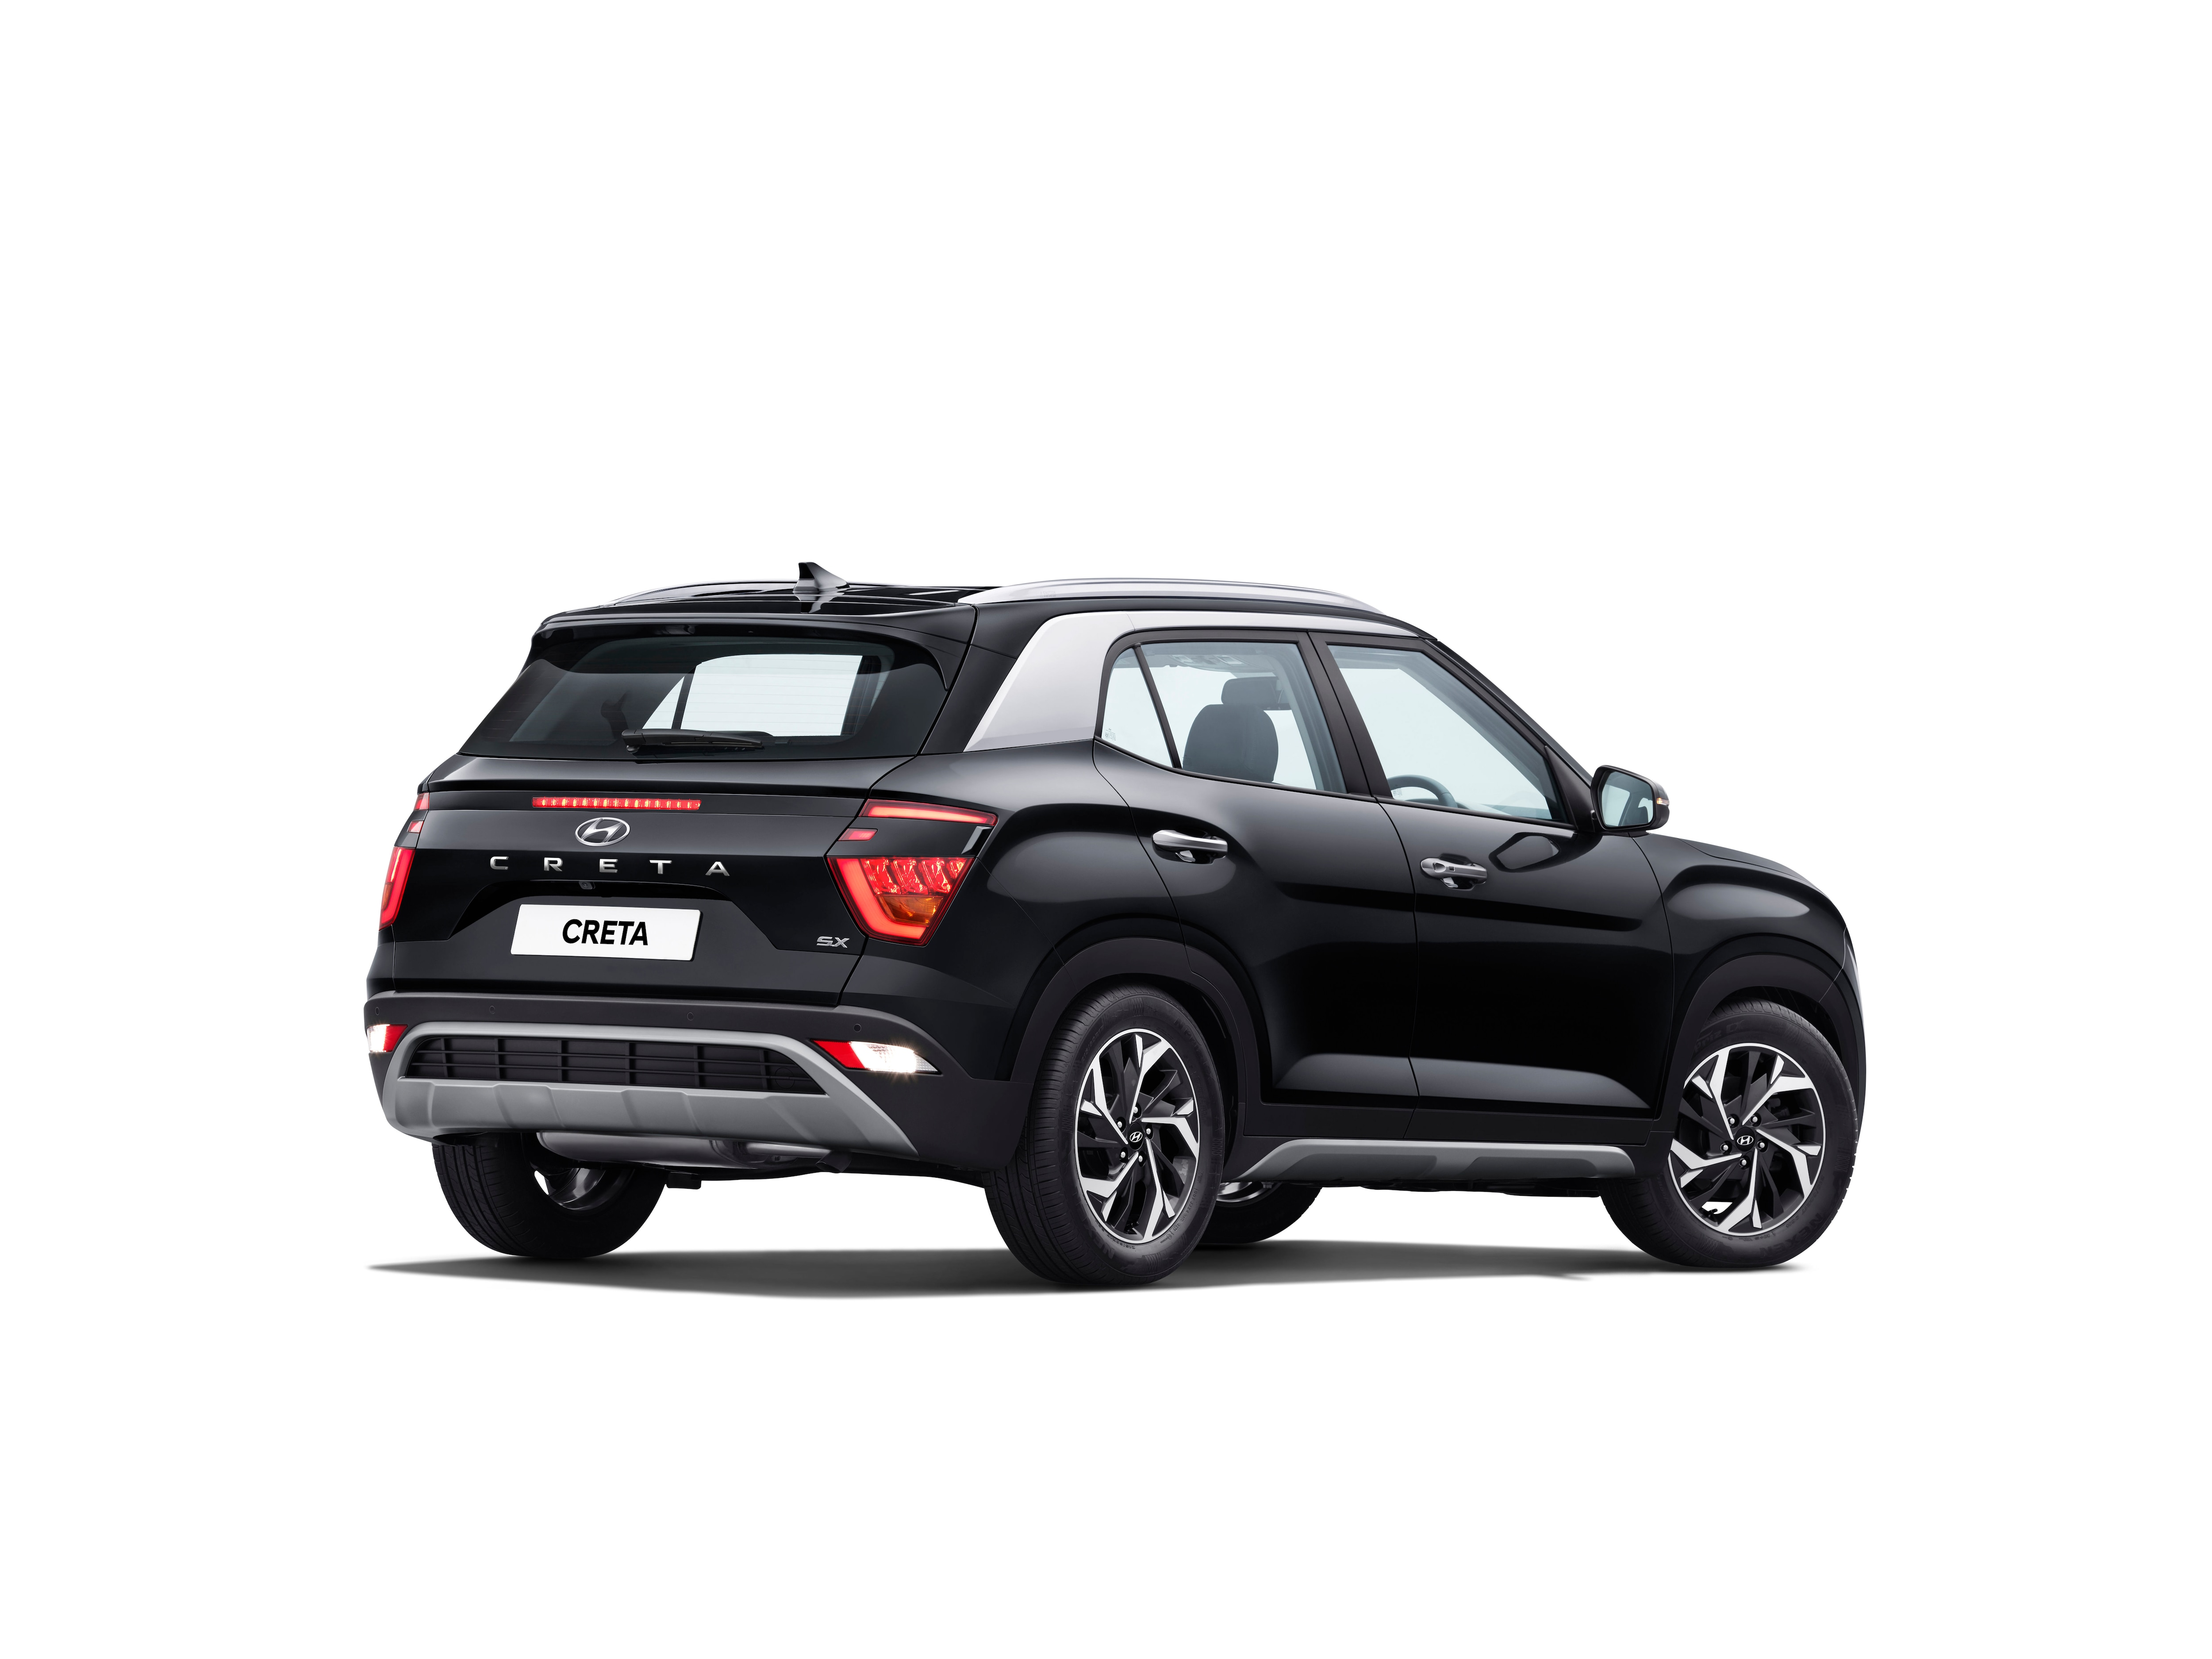 Creta gets several styling elements which sets it apart from its predecessor.